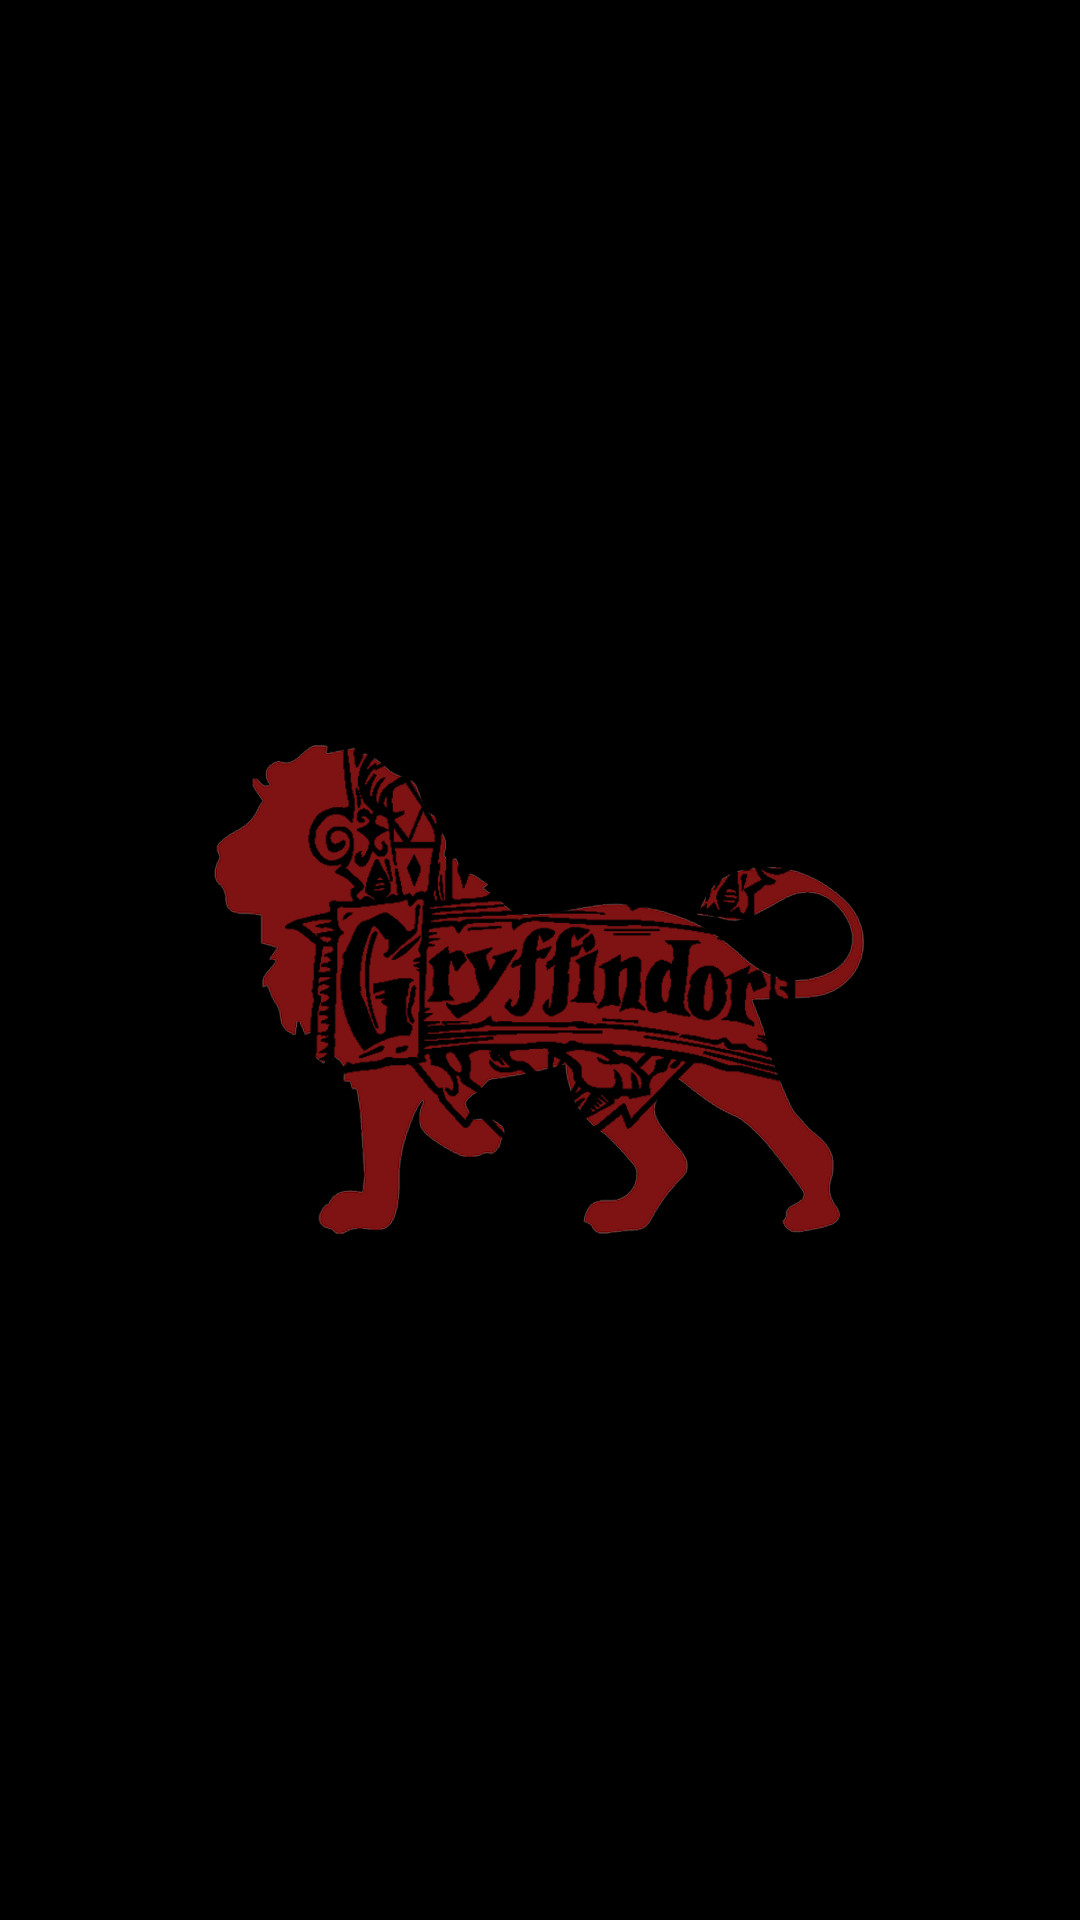 Res: 1080x1920, Gryffindor I am Ravenclaw but Gryiffindor is soo good